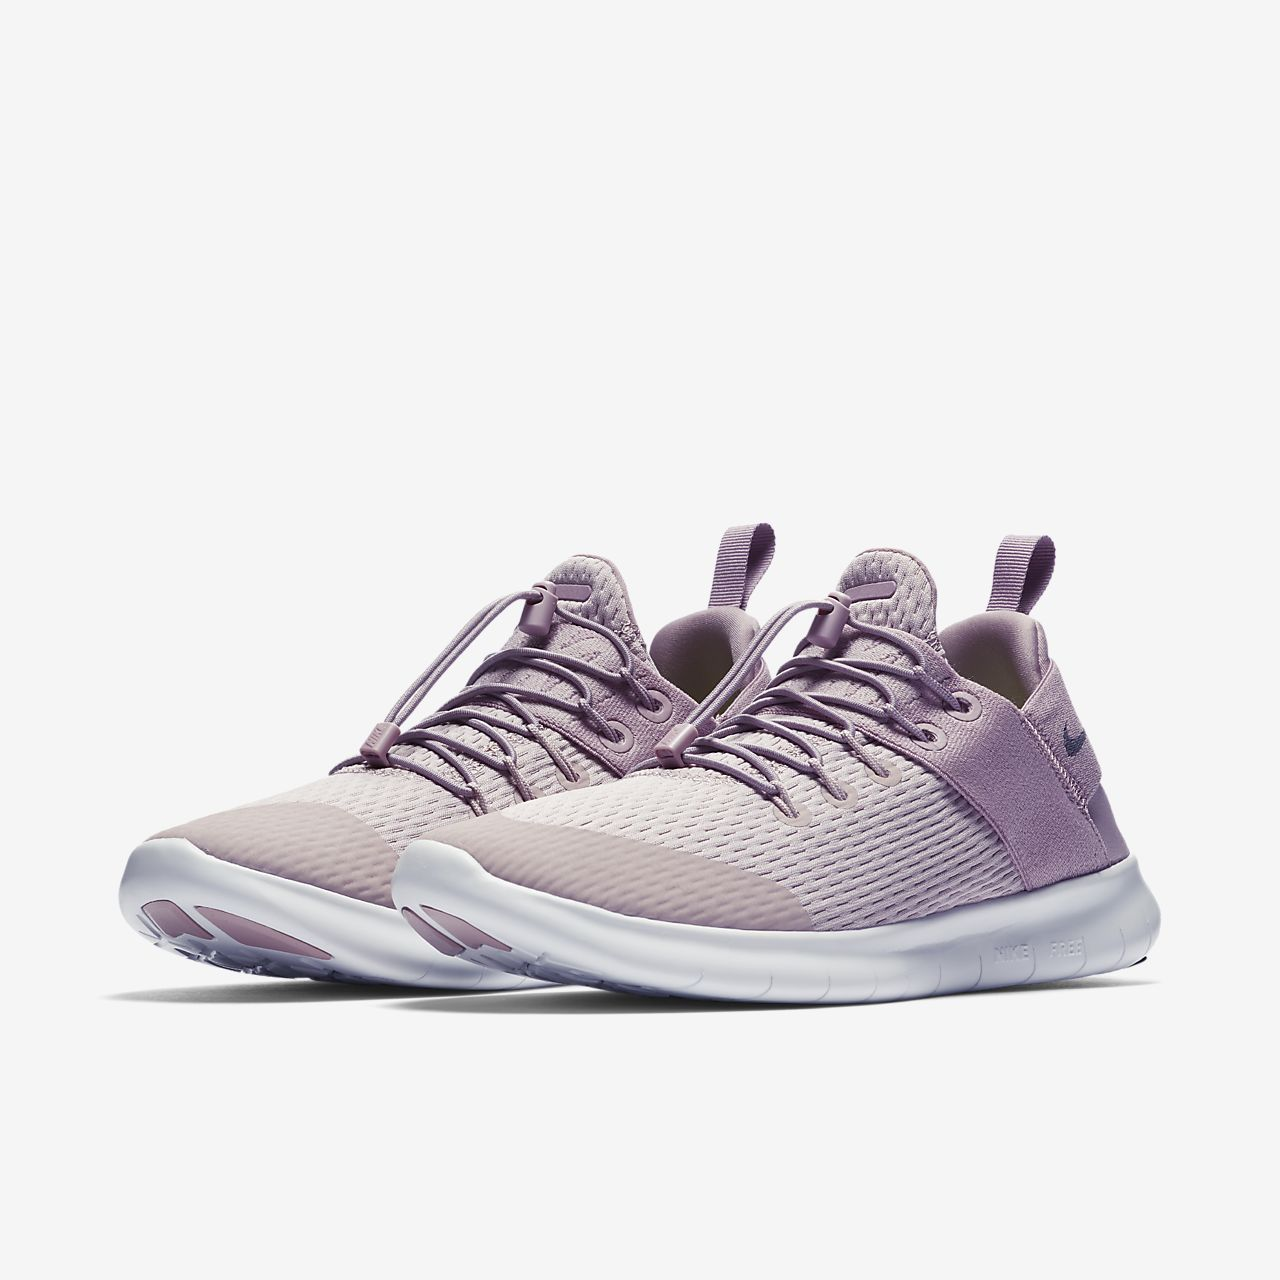 nike free donna 2017